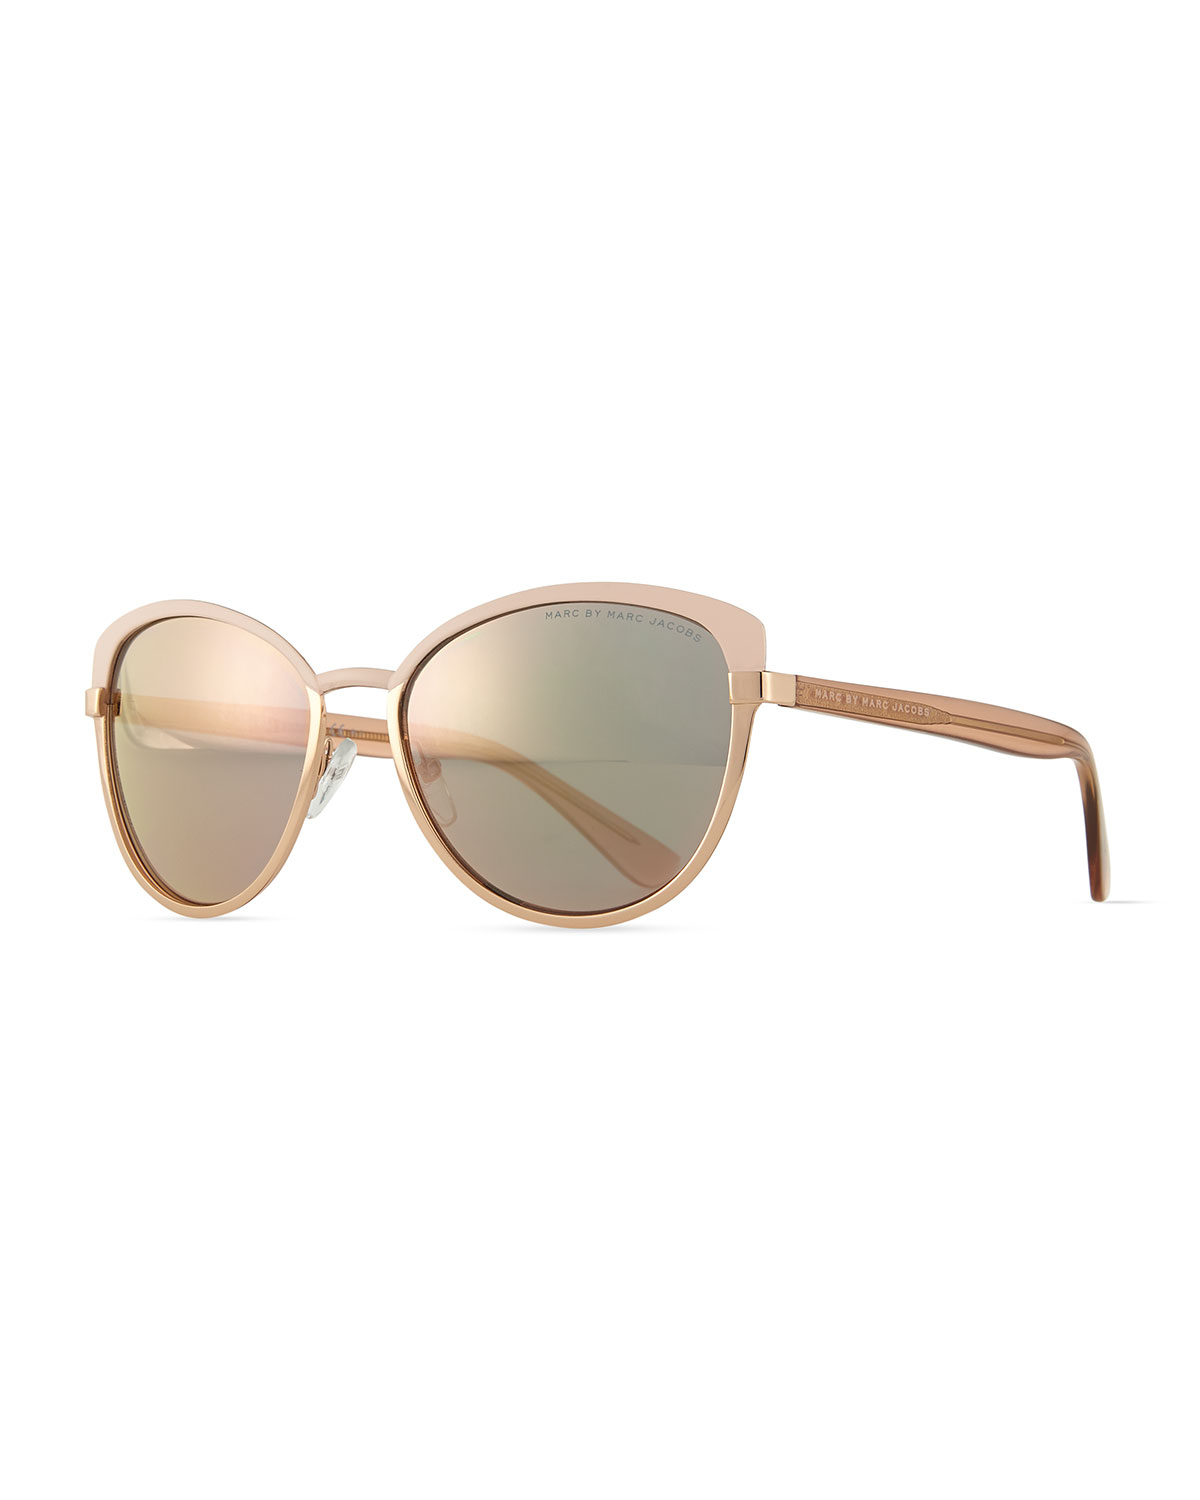 Marc Jacobs Gold Frame Sunglasses : Marc by marc jacobs Special Edition Metal Butterfly ...